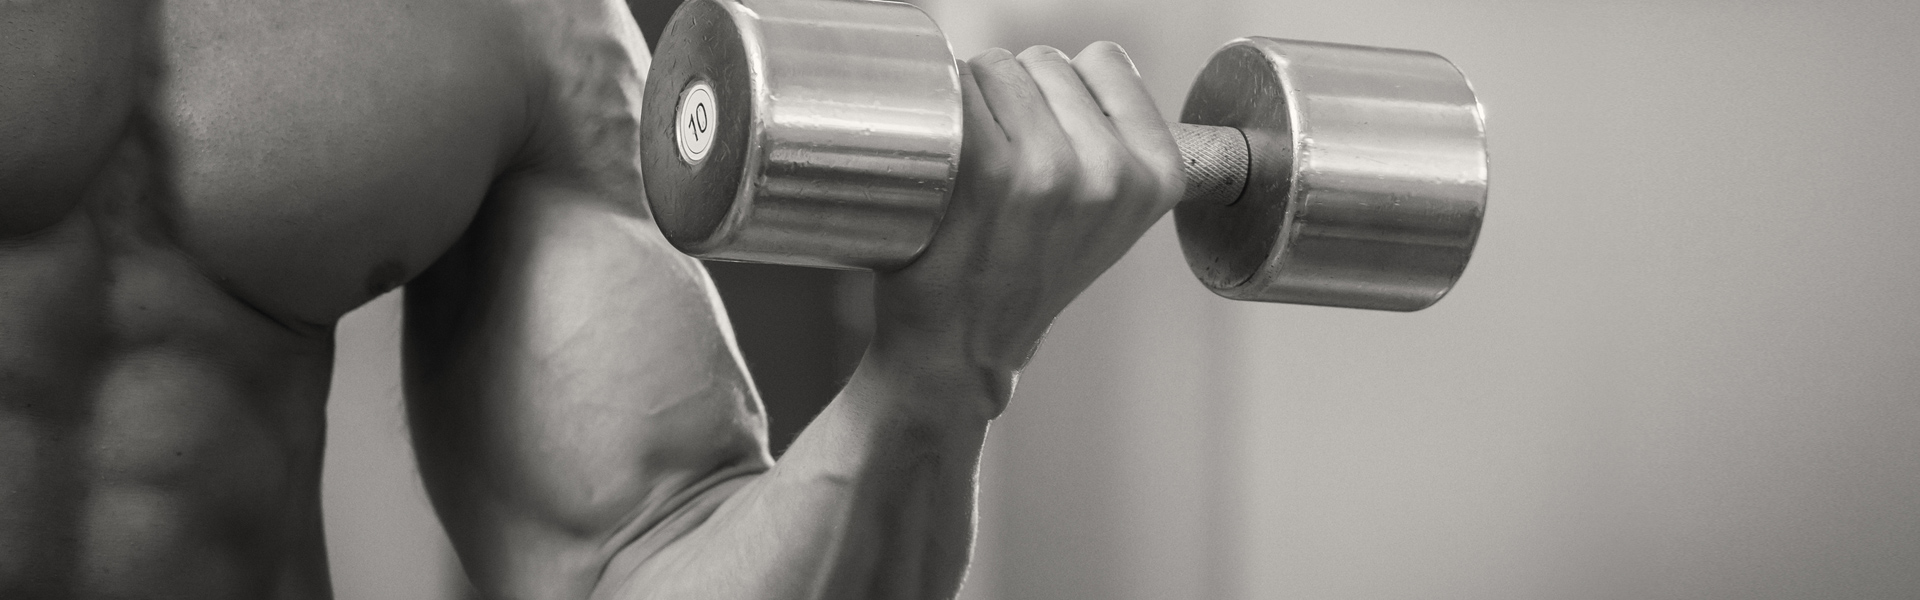 Huge Biceps: How To Maximise Muscle Development